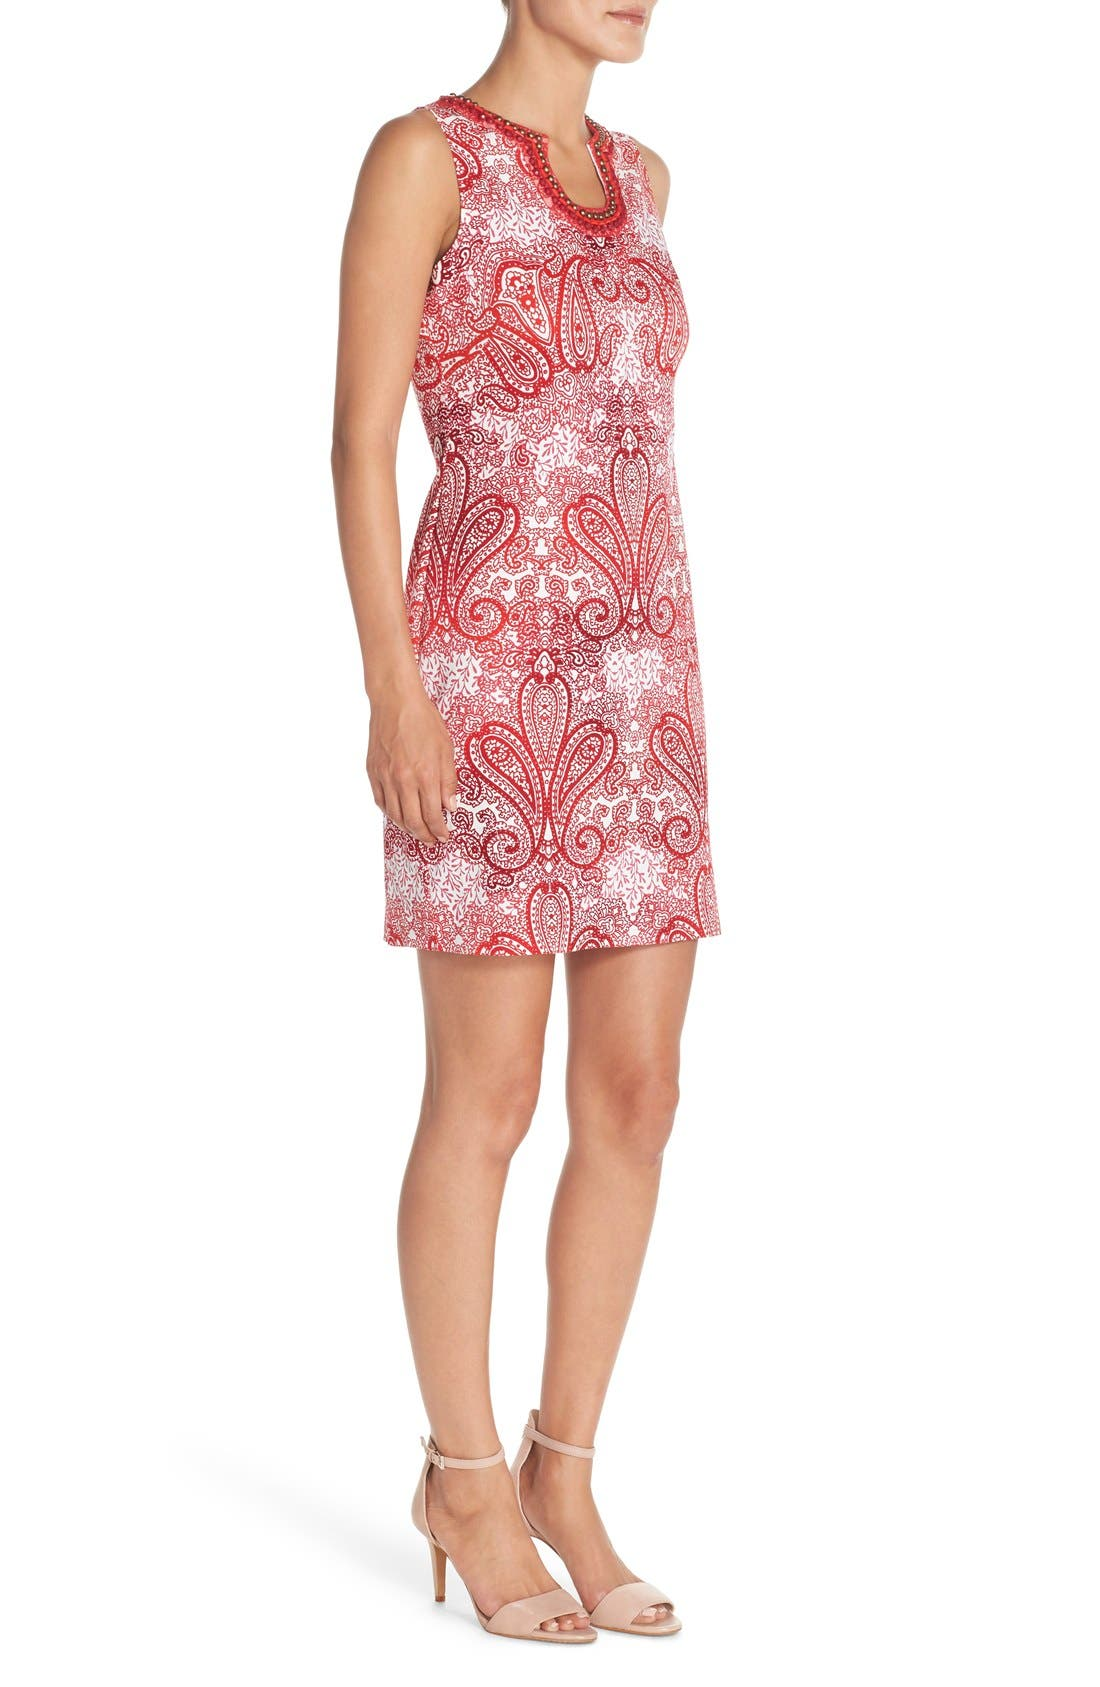 Alternate Image 3  - London Times 'Regal Ombré' Embellished Paisley Print Sleeveless Shift Dress